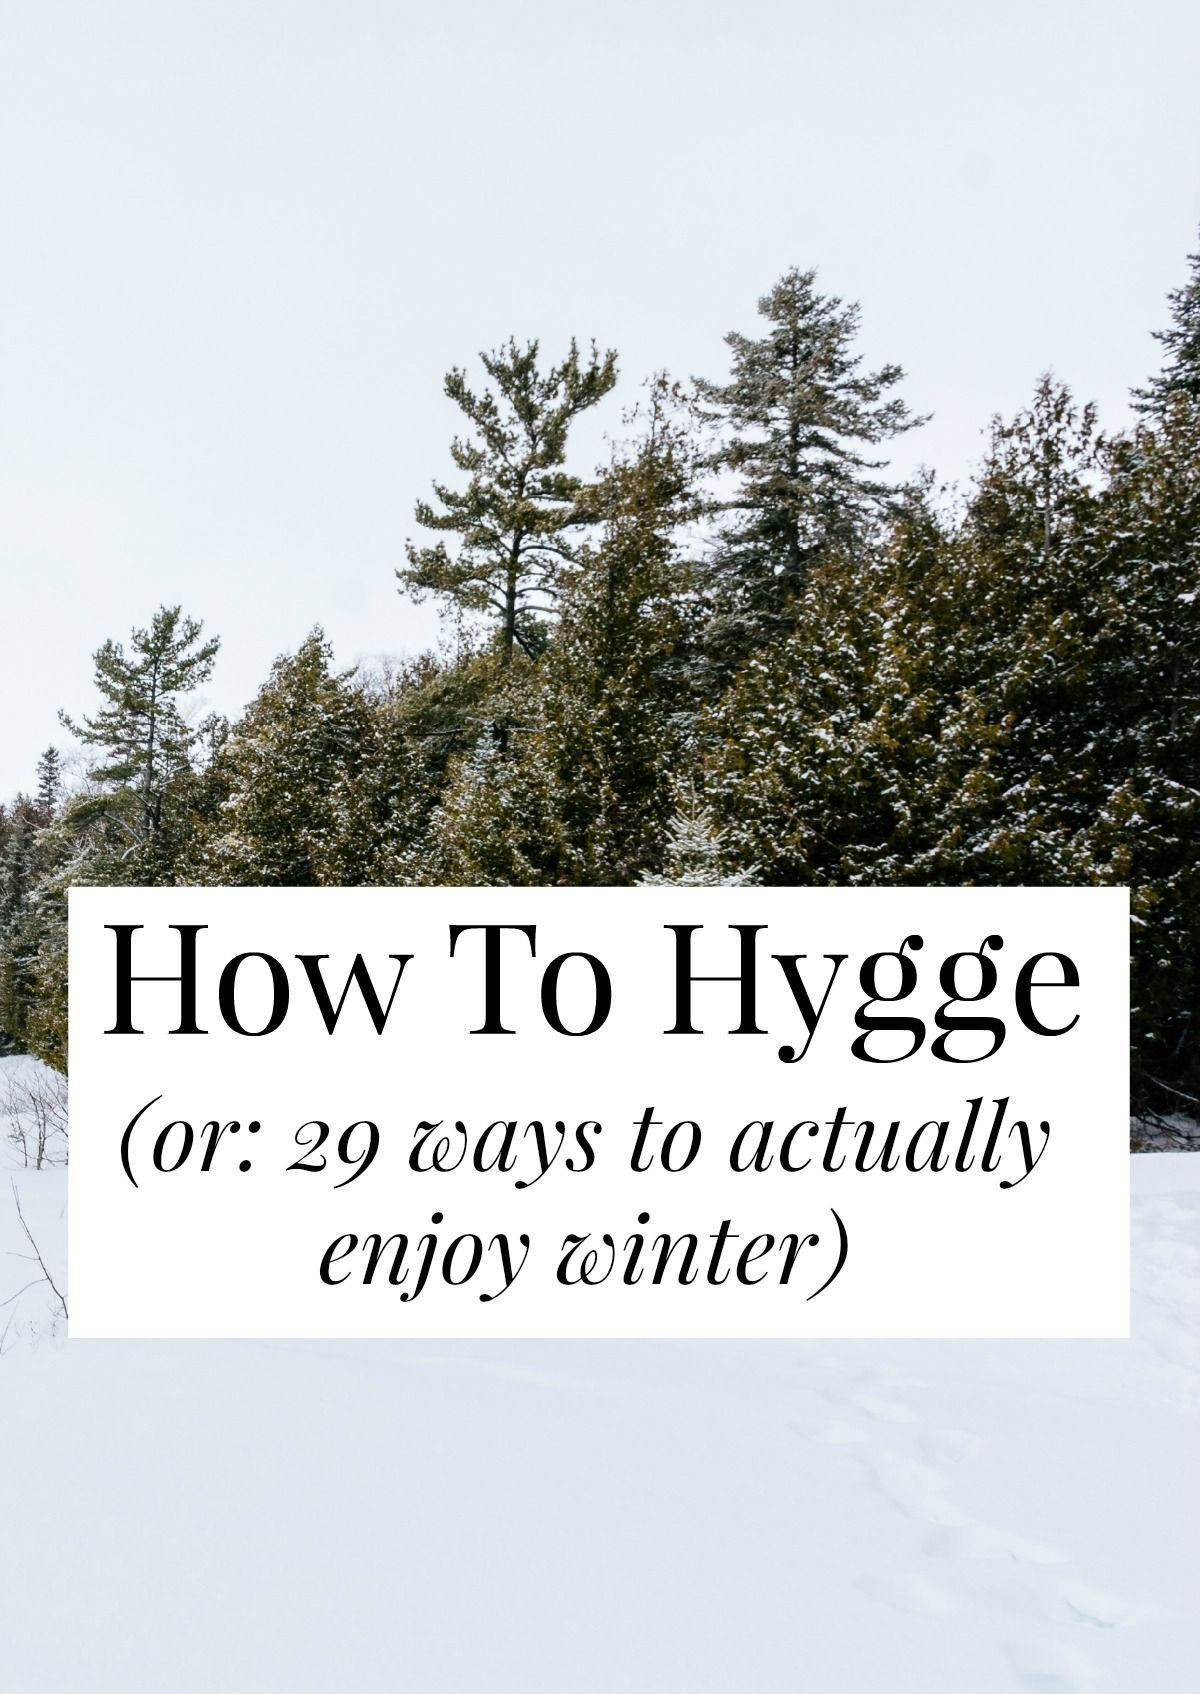 To Hygge (Or: 29 Ways To Actually Enjoy Winter) 'Hygge' is the Danish concept of